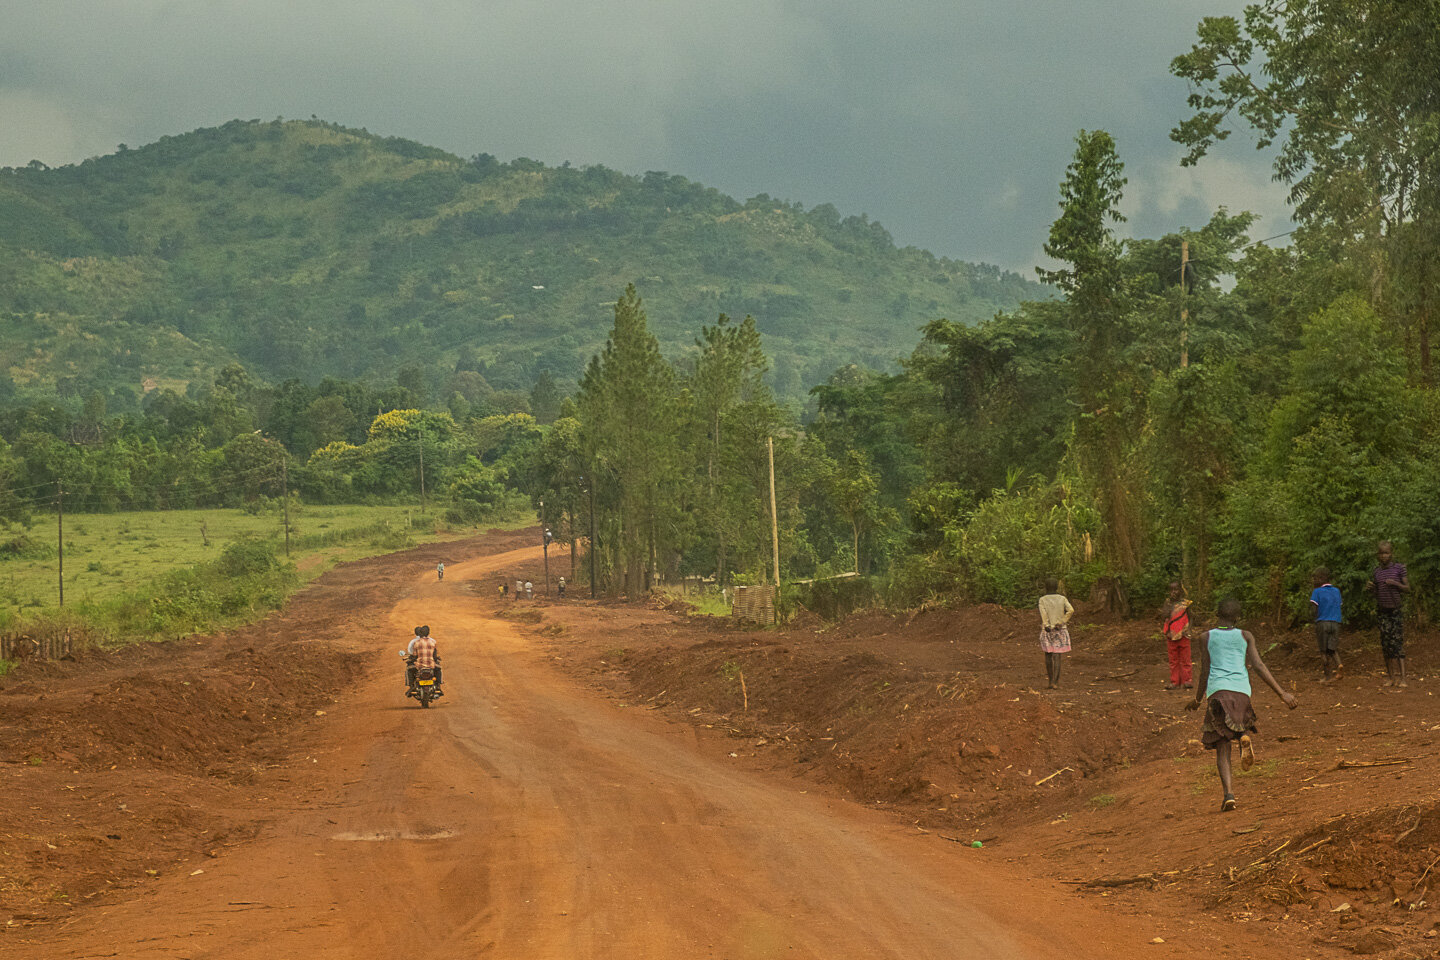 Road without construction in Uganda